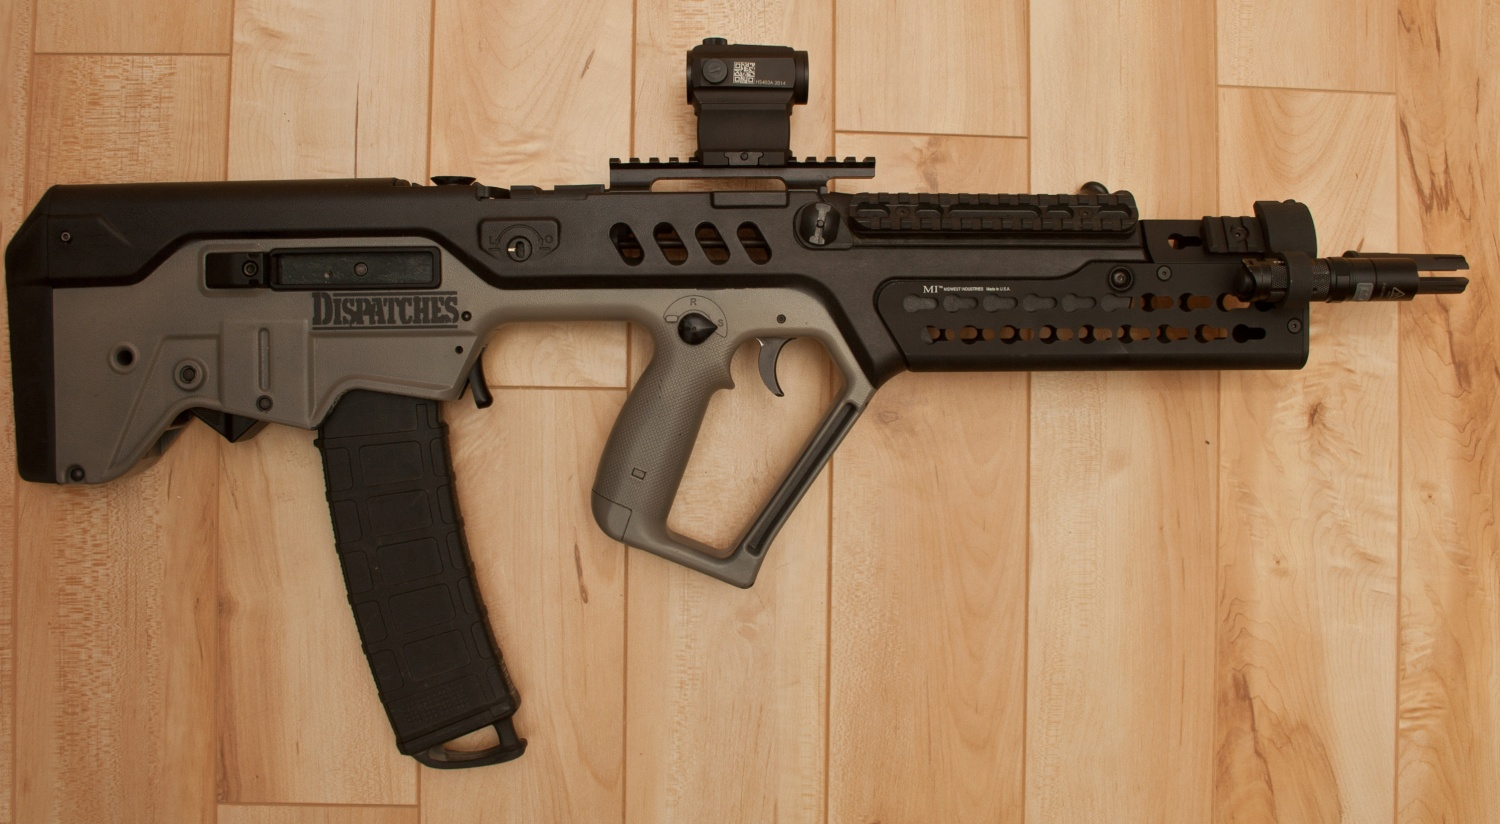 My initial low-light setup for the Tavor.